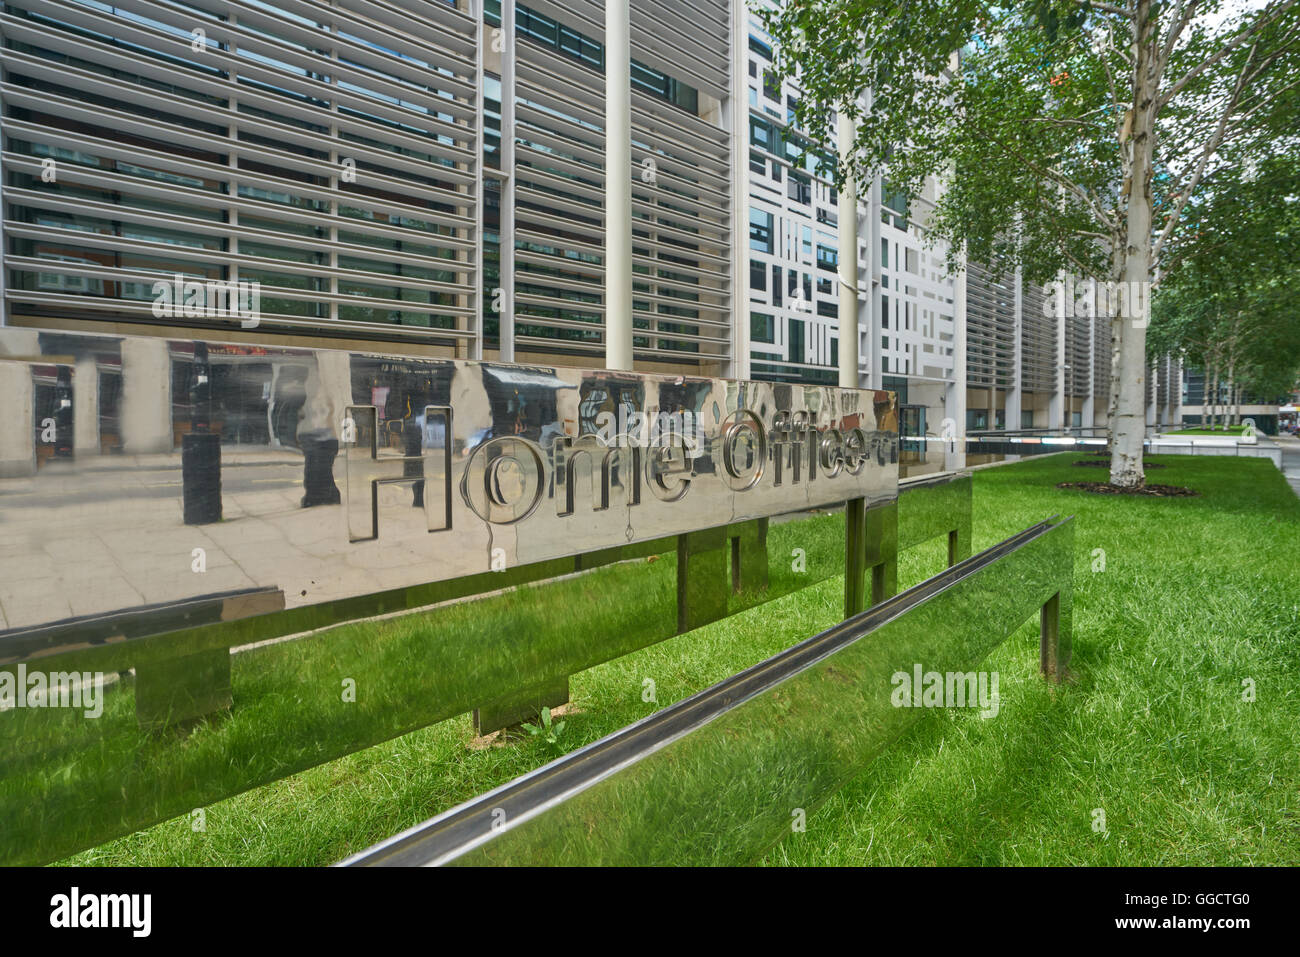 The Home Office. London - Stock Image